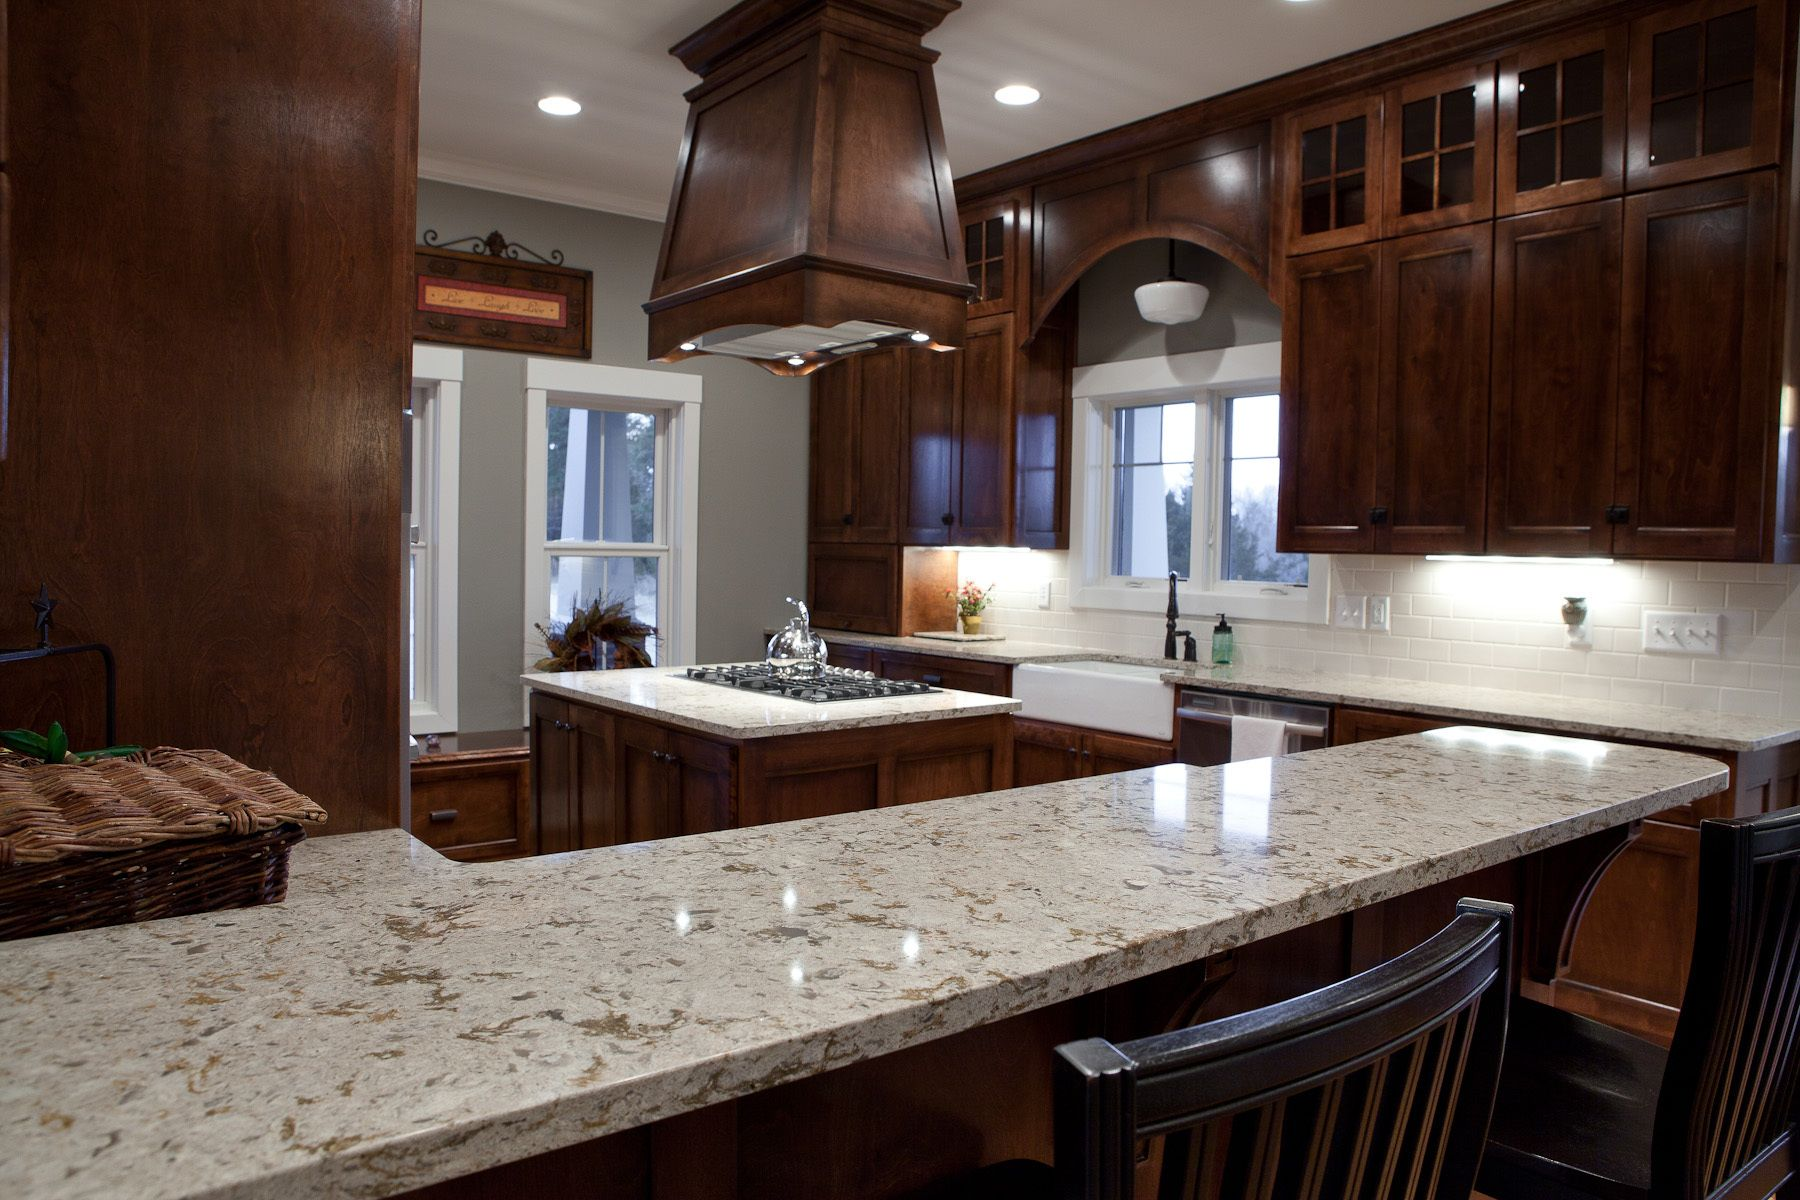 Fantastic Wooden Range Hood Over Island With Black Stove: what is the whitest quartz countertop